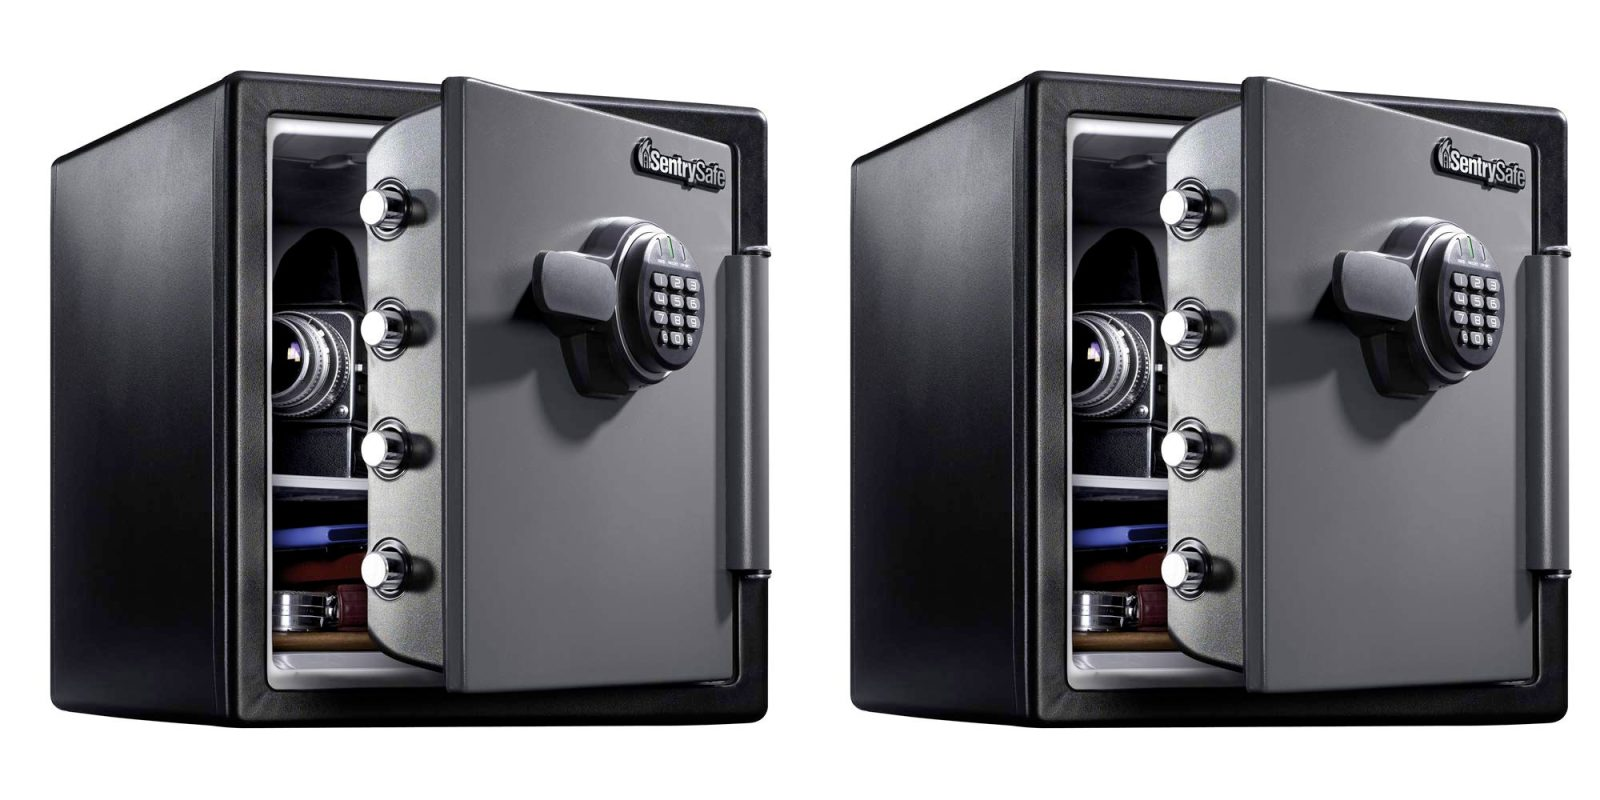 SentrySafe's 1 23-Cu  Ft  safe is water + fire resistant for $120